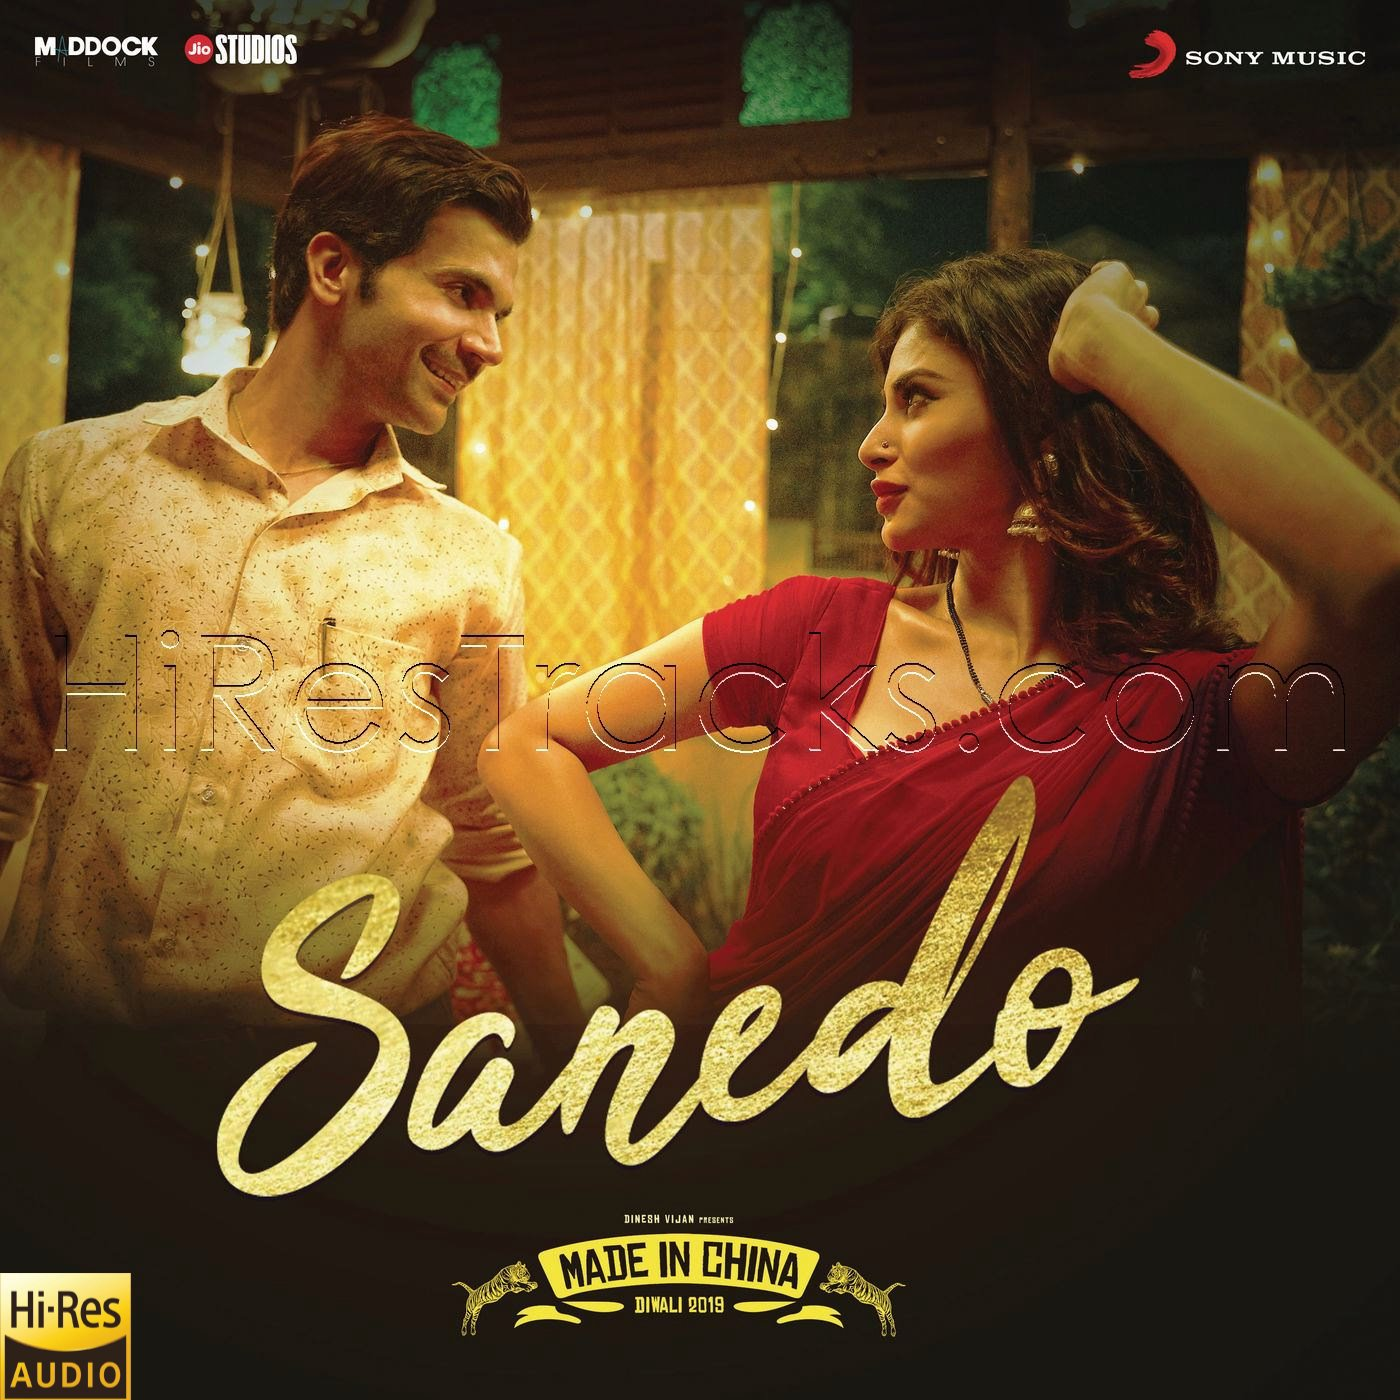 Sanedo (From Made in China) (2019) (Sachin-Jigar) (Sony Music) [24 BIT – 96 KHZ] [Digital-RIP-FLAC]